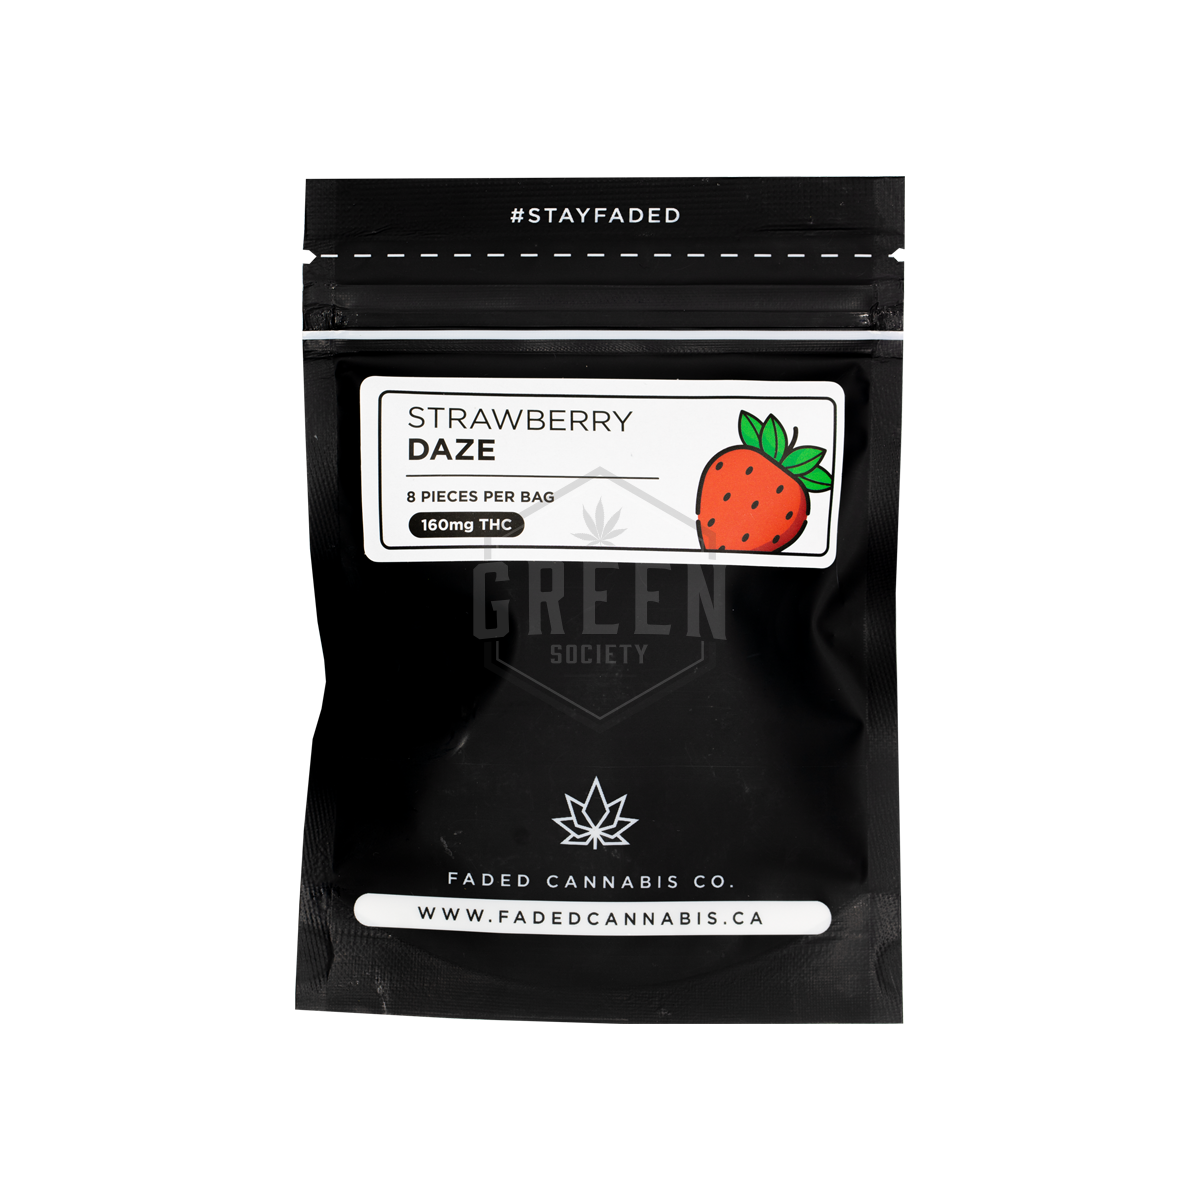 Faded Cannabis Co. Strawberry Daze Gummies by Green Society - Image © 2018 Green Society. All Rights Reserved.